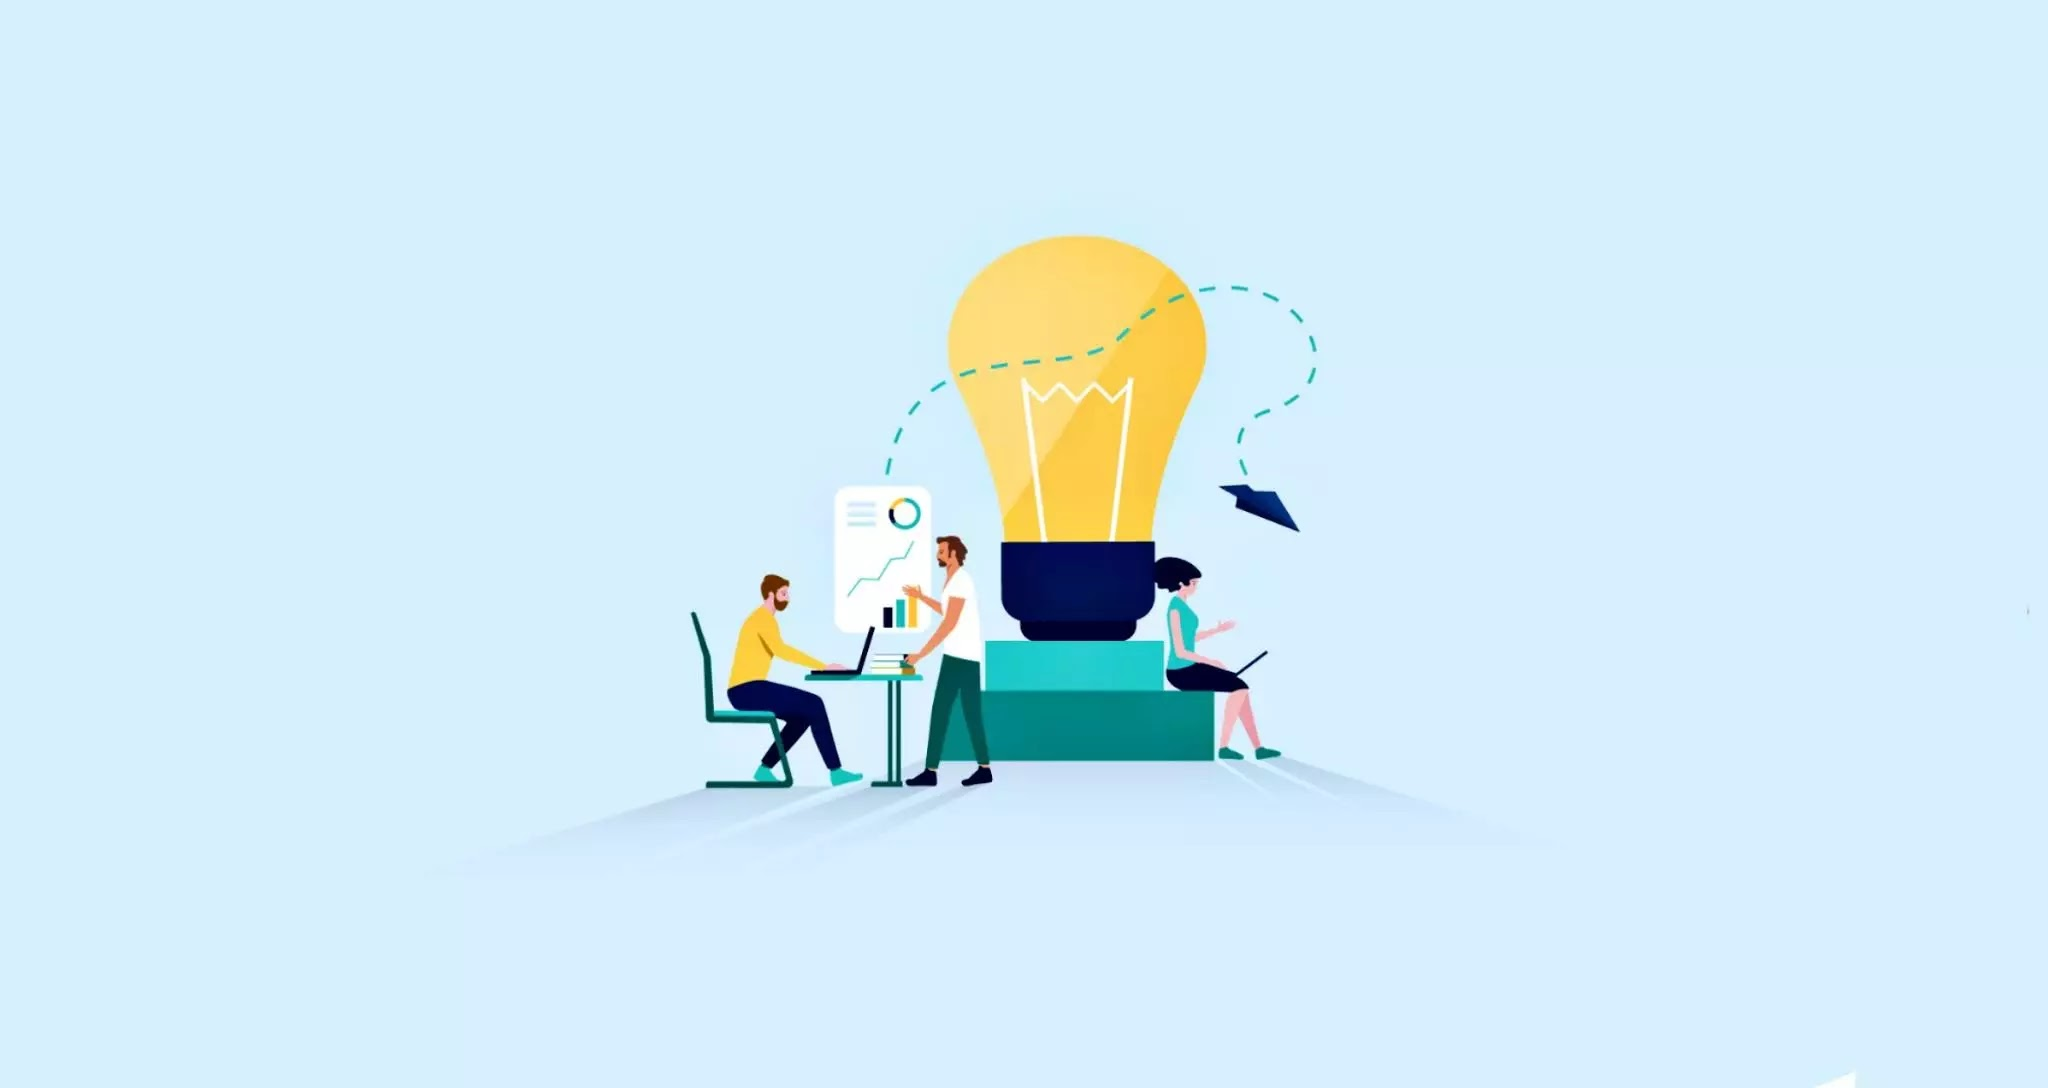 Best startup Ideas for Students